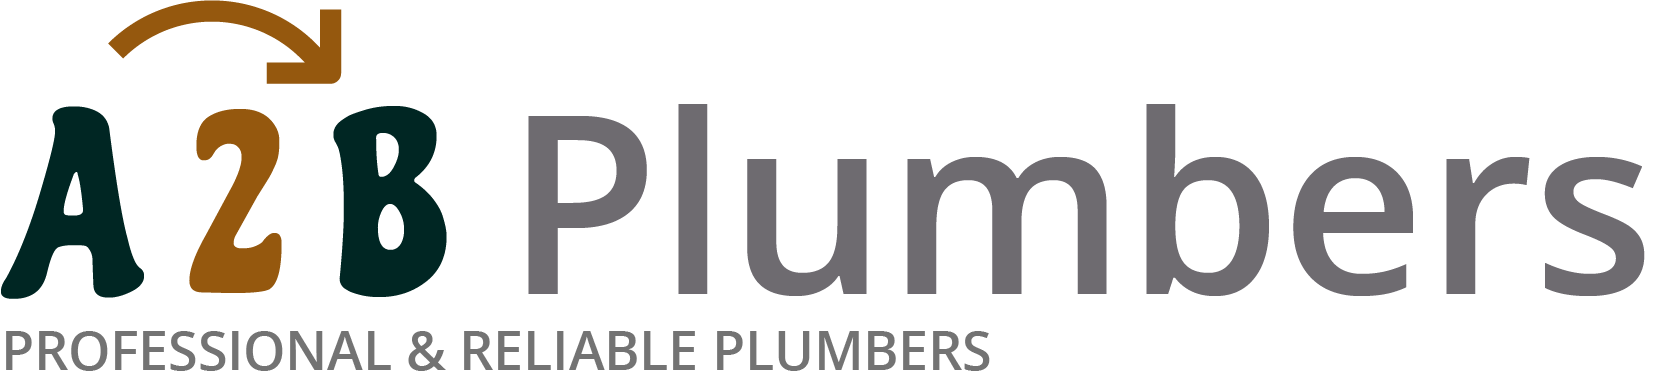 If you need a boiler installed, a radiator repaired or a leaking tap fixed, call us now - we provide services for properties in Pinner and the local area.